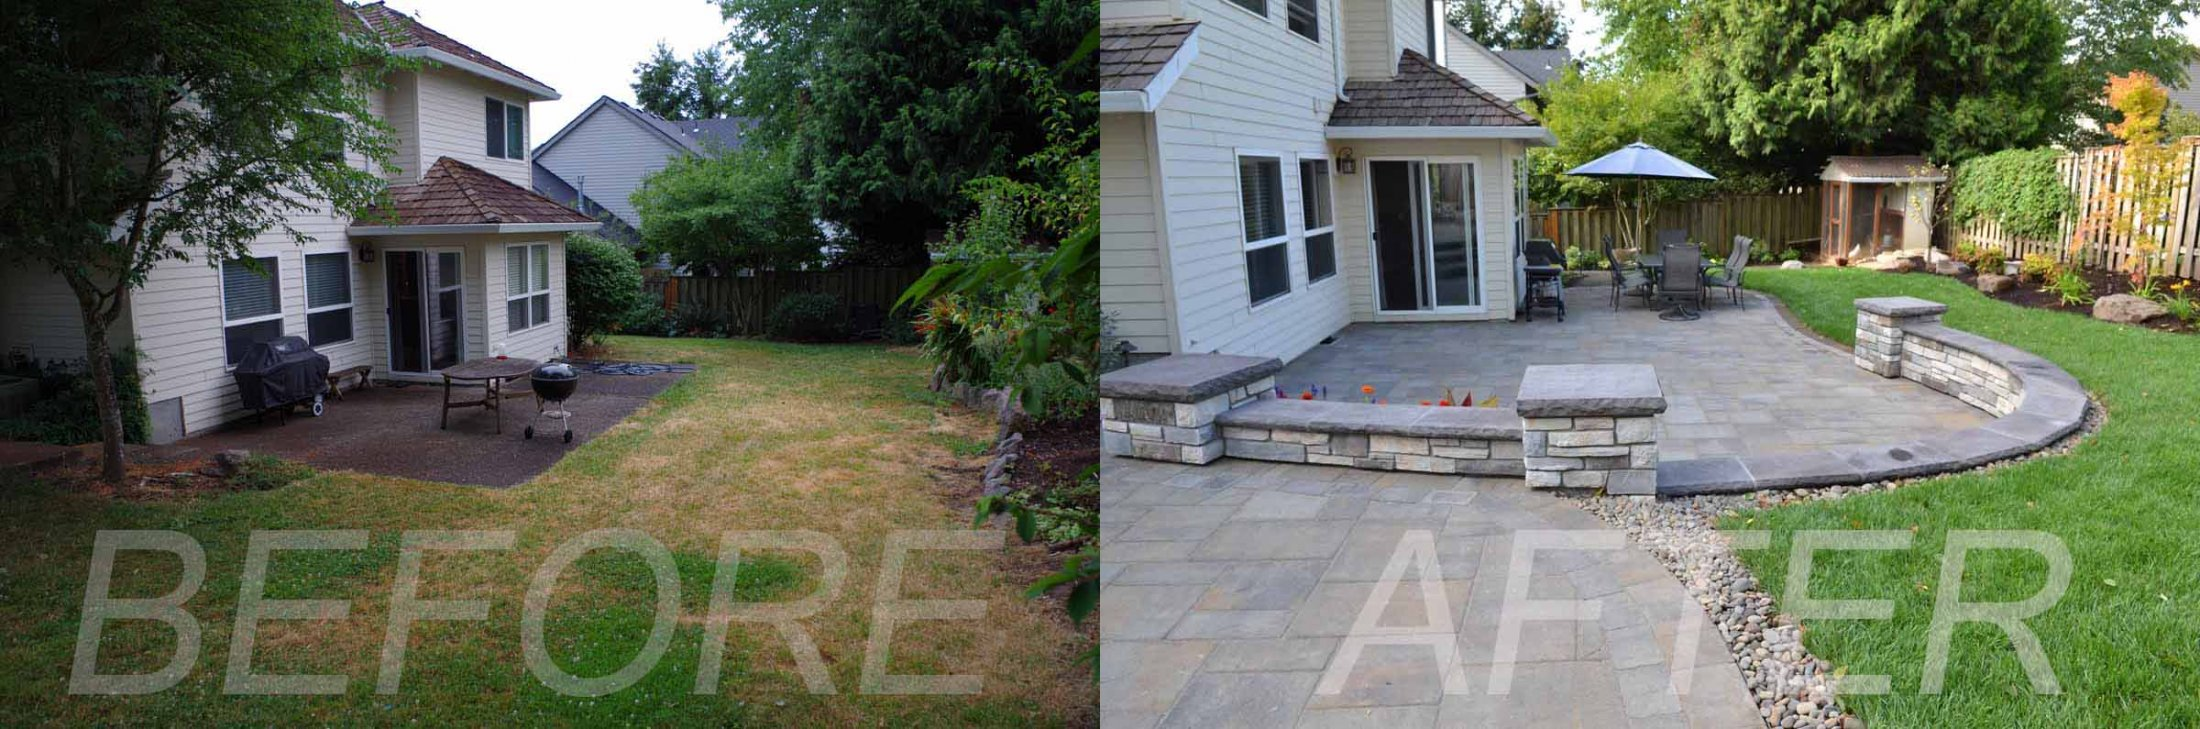 Before-after-moret-project-summer-2015 000